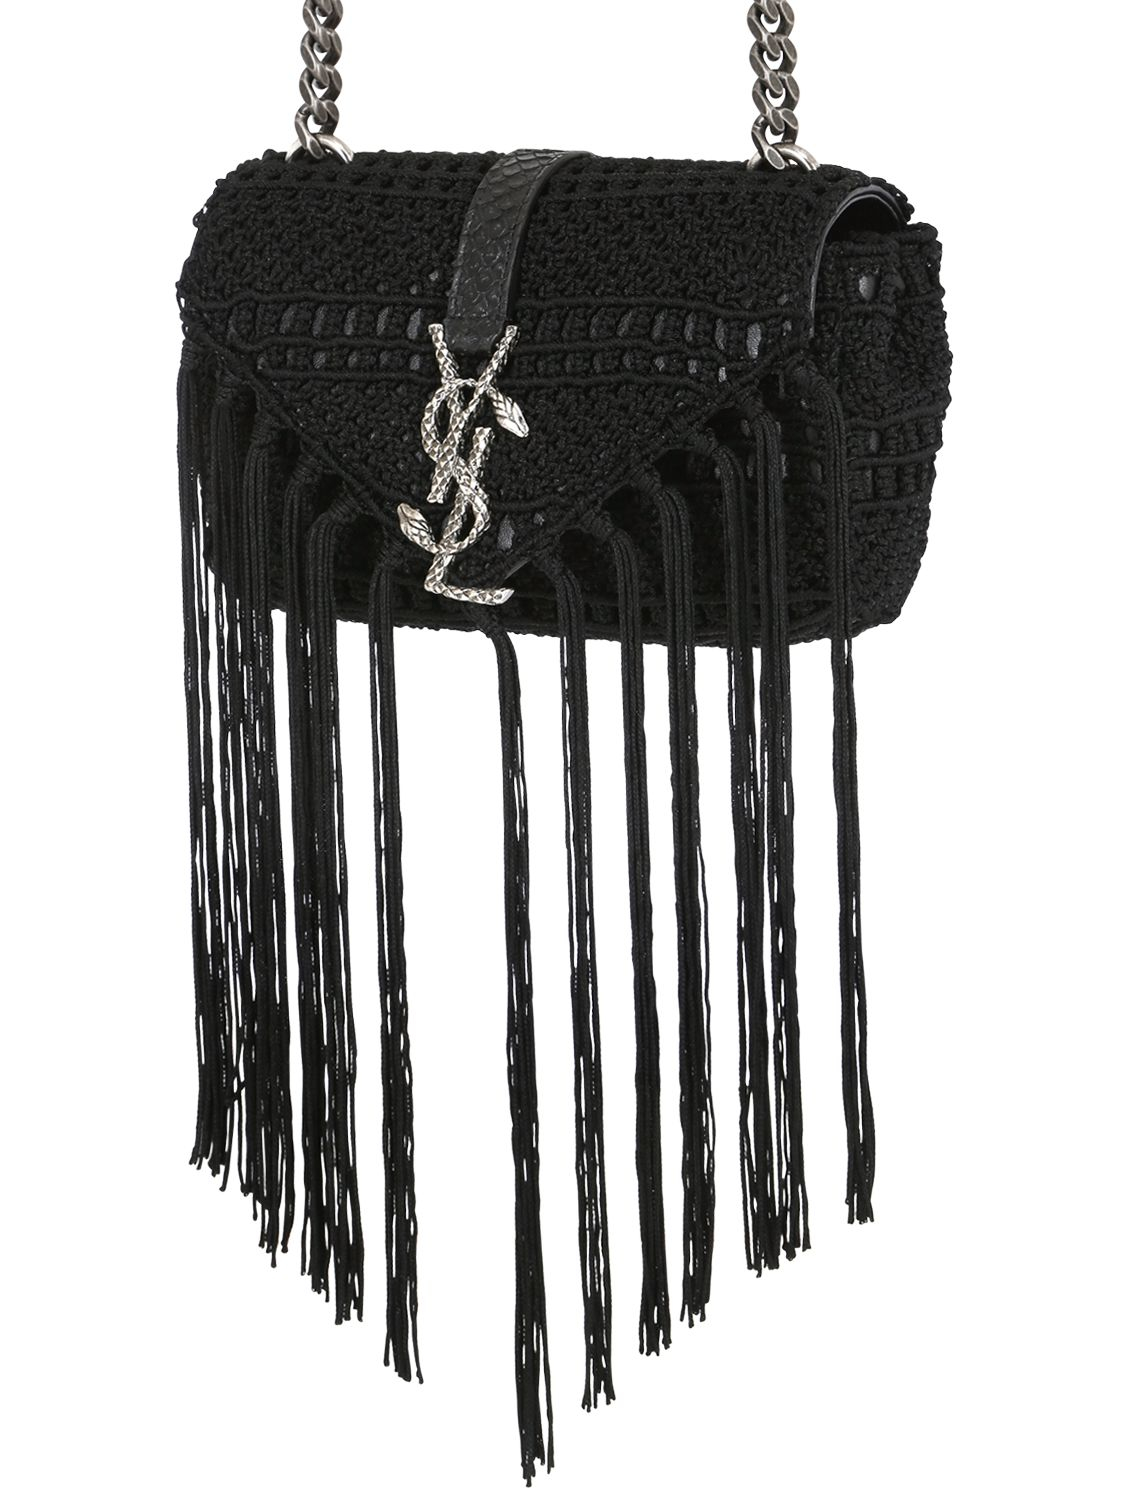 Monogram Crochet Fringe Clutch Bag, White